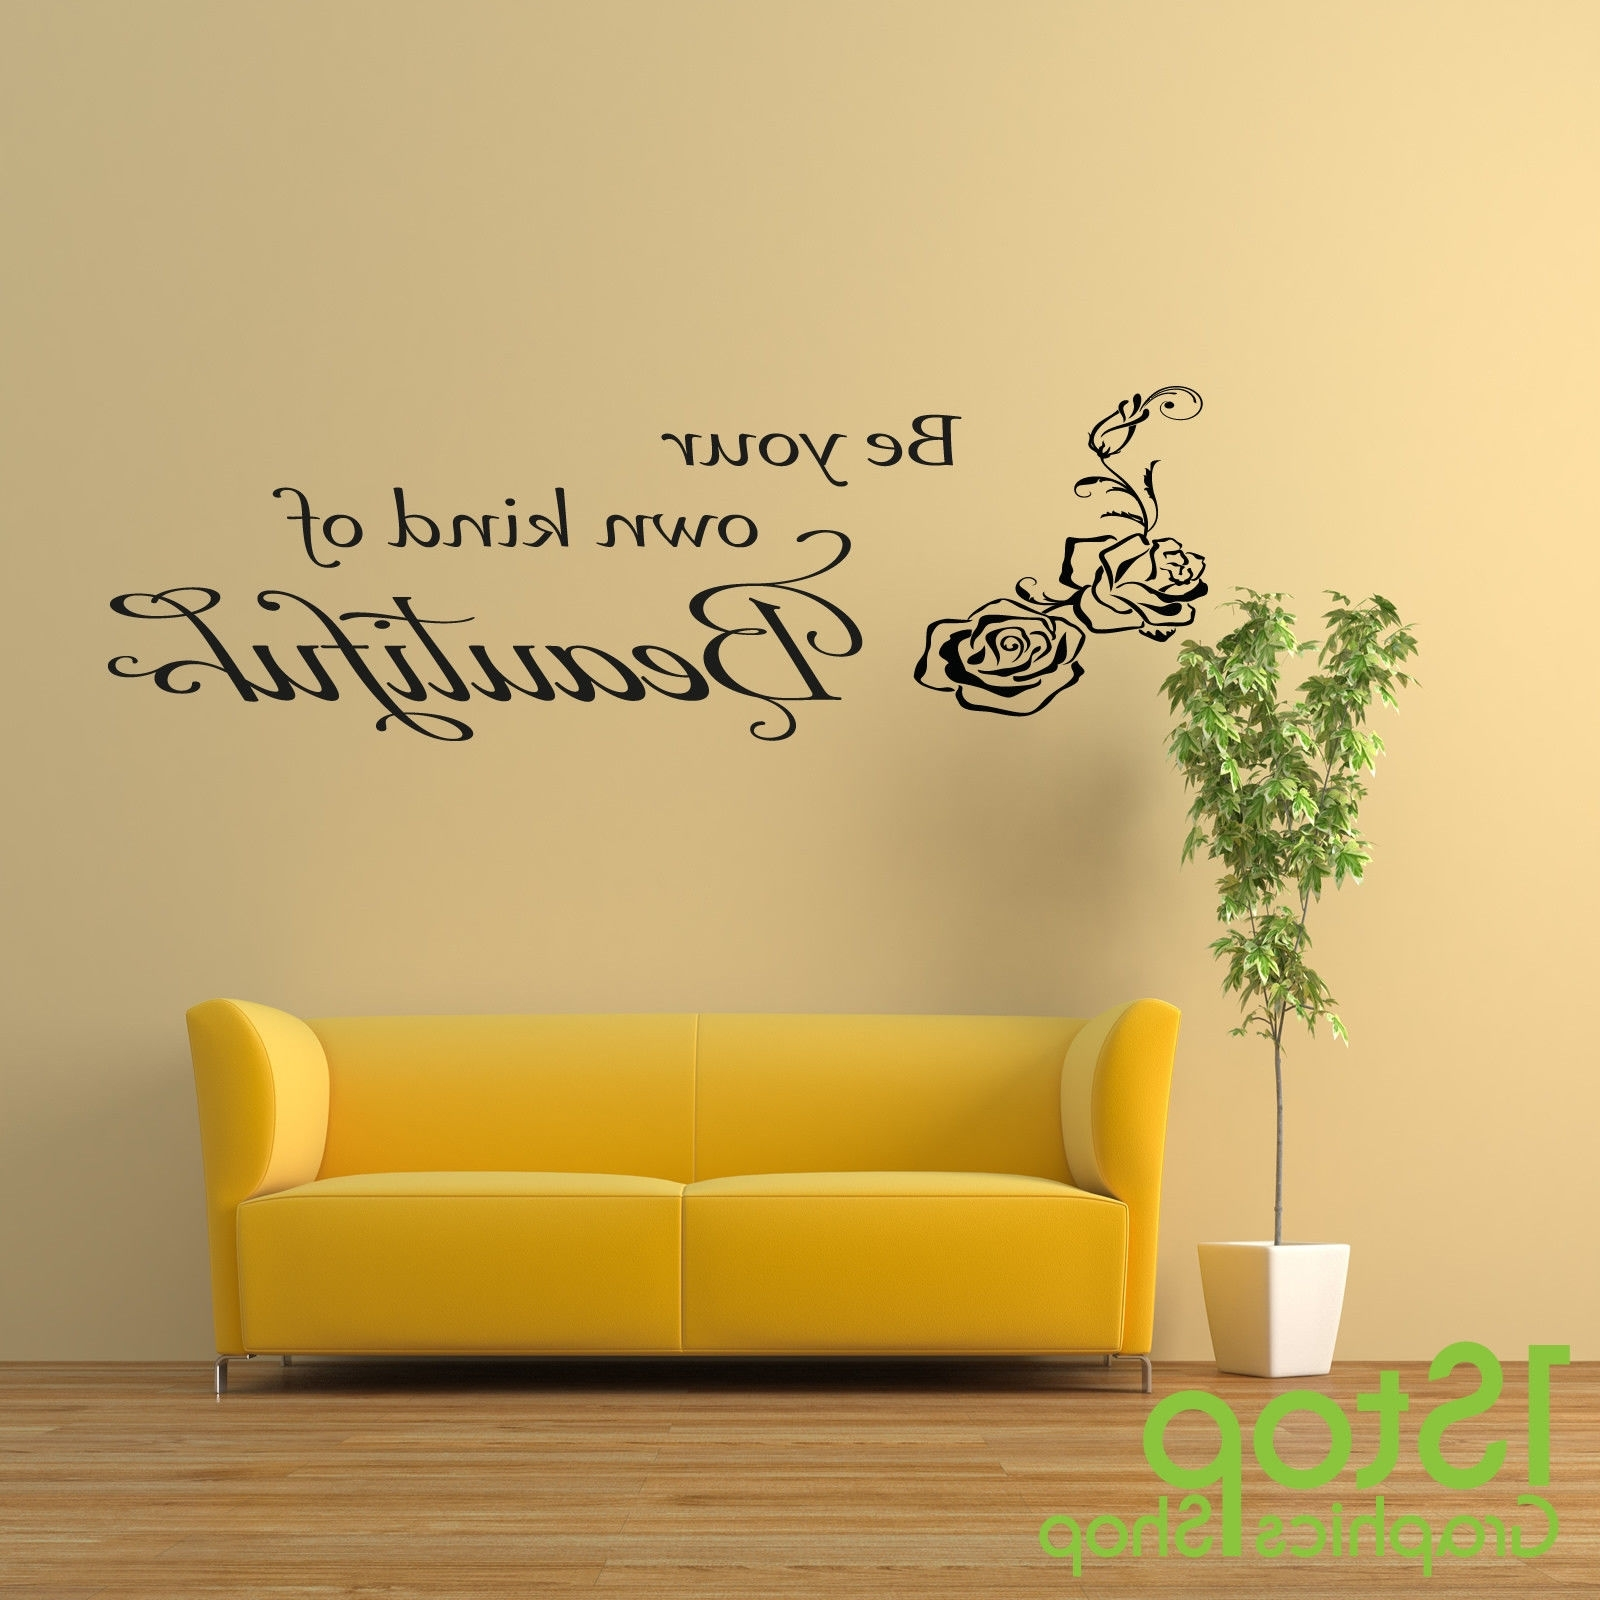 Be Your Own Kind Of Beautiful Wall Art Intended For Preferred Be Your Own Kind Of Beautiful Wall Sticker Quote – Lounge Wall Art (View 5 of 15)